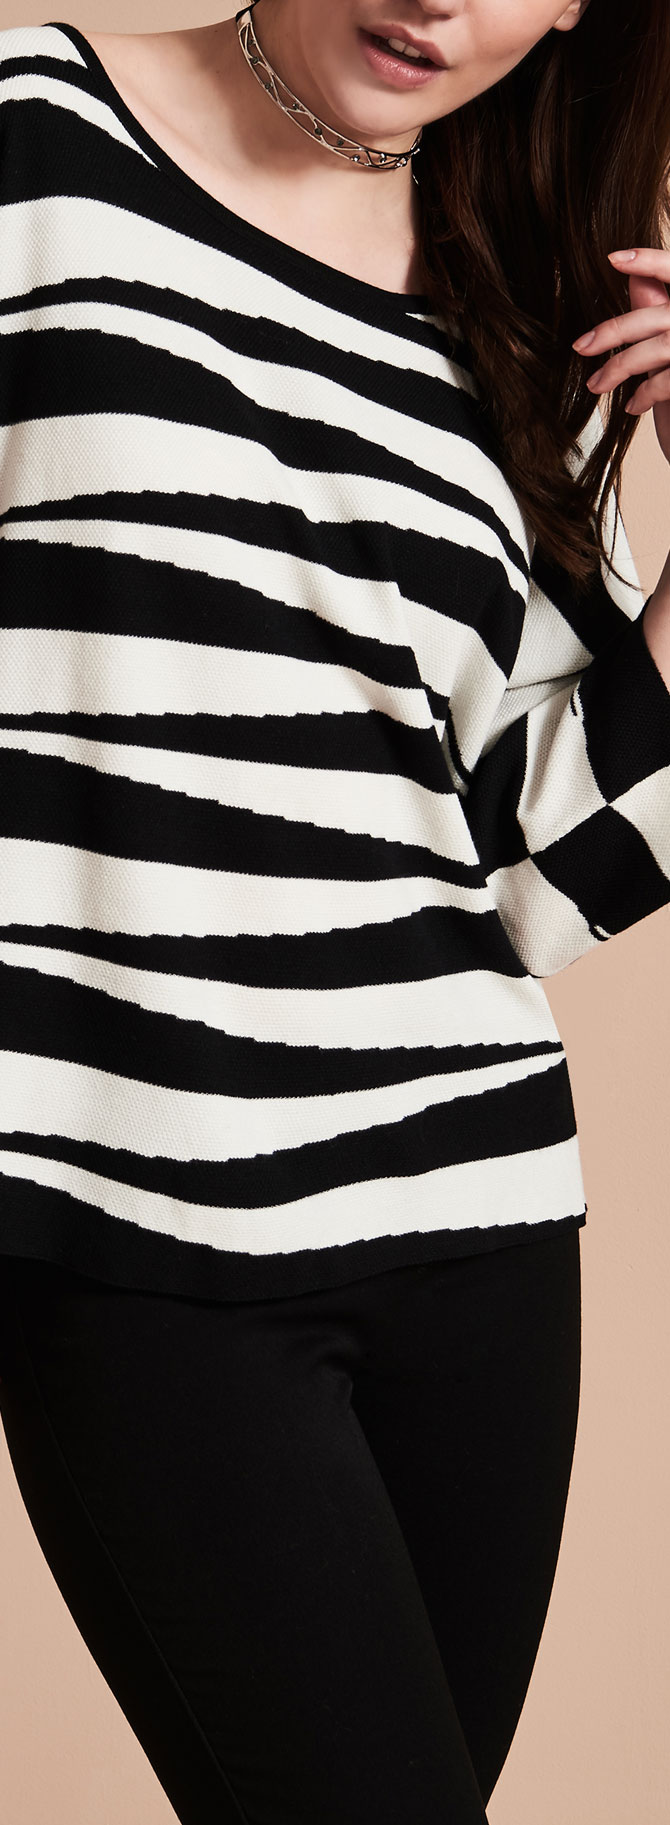 3/4 Sleeve Graphic Knit Top